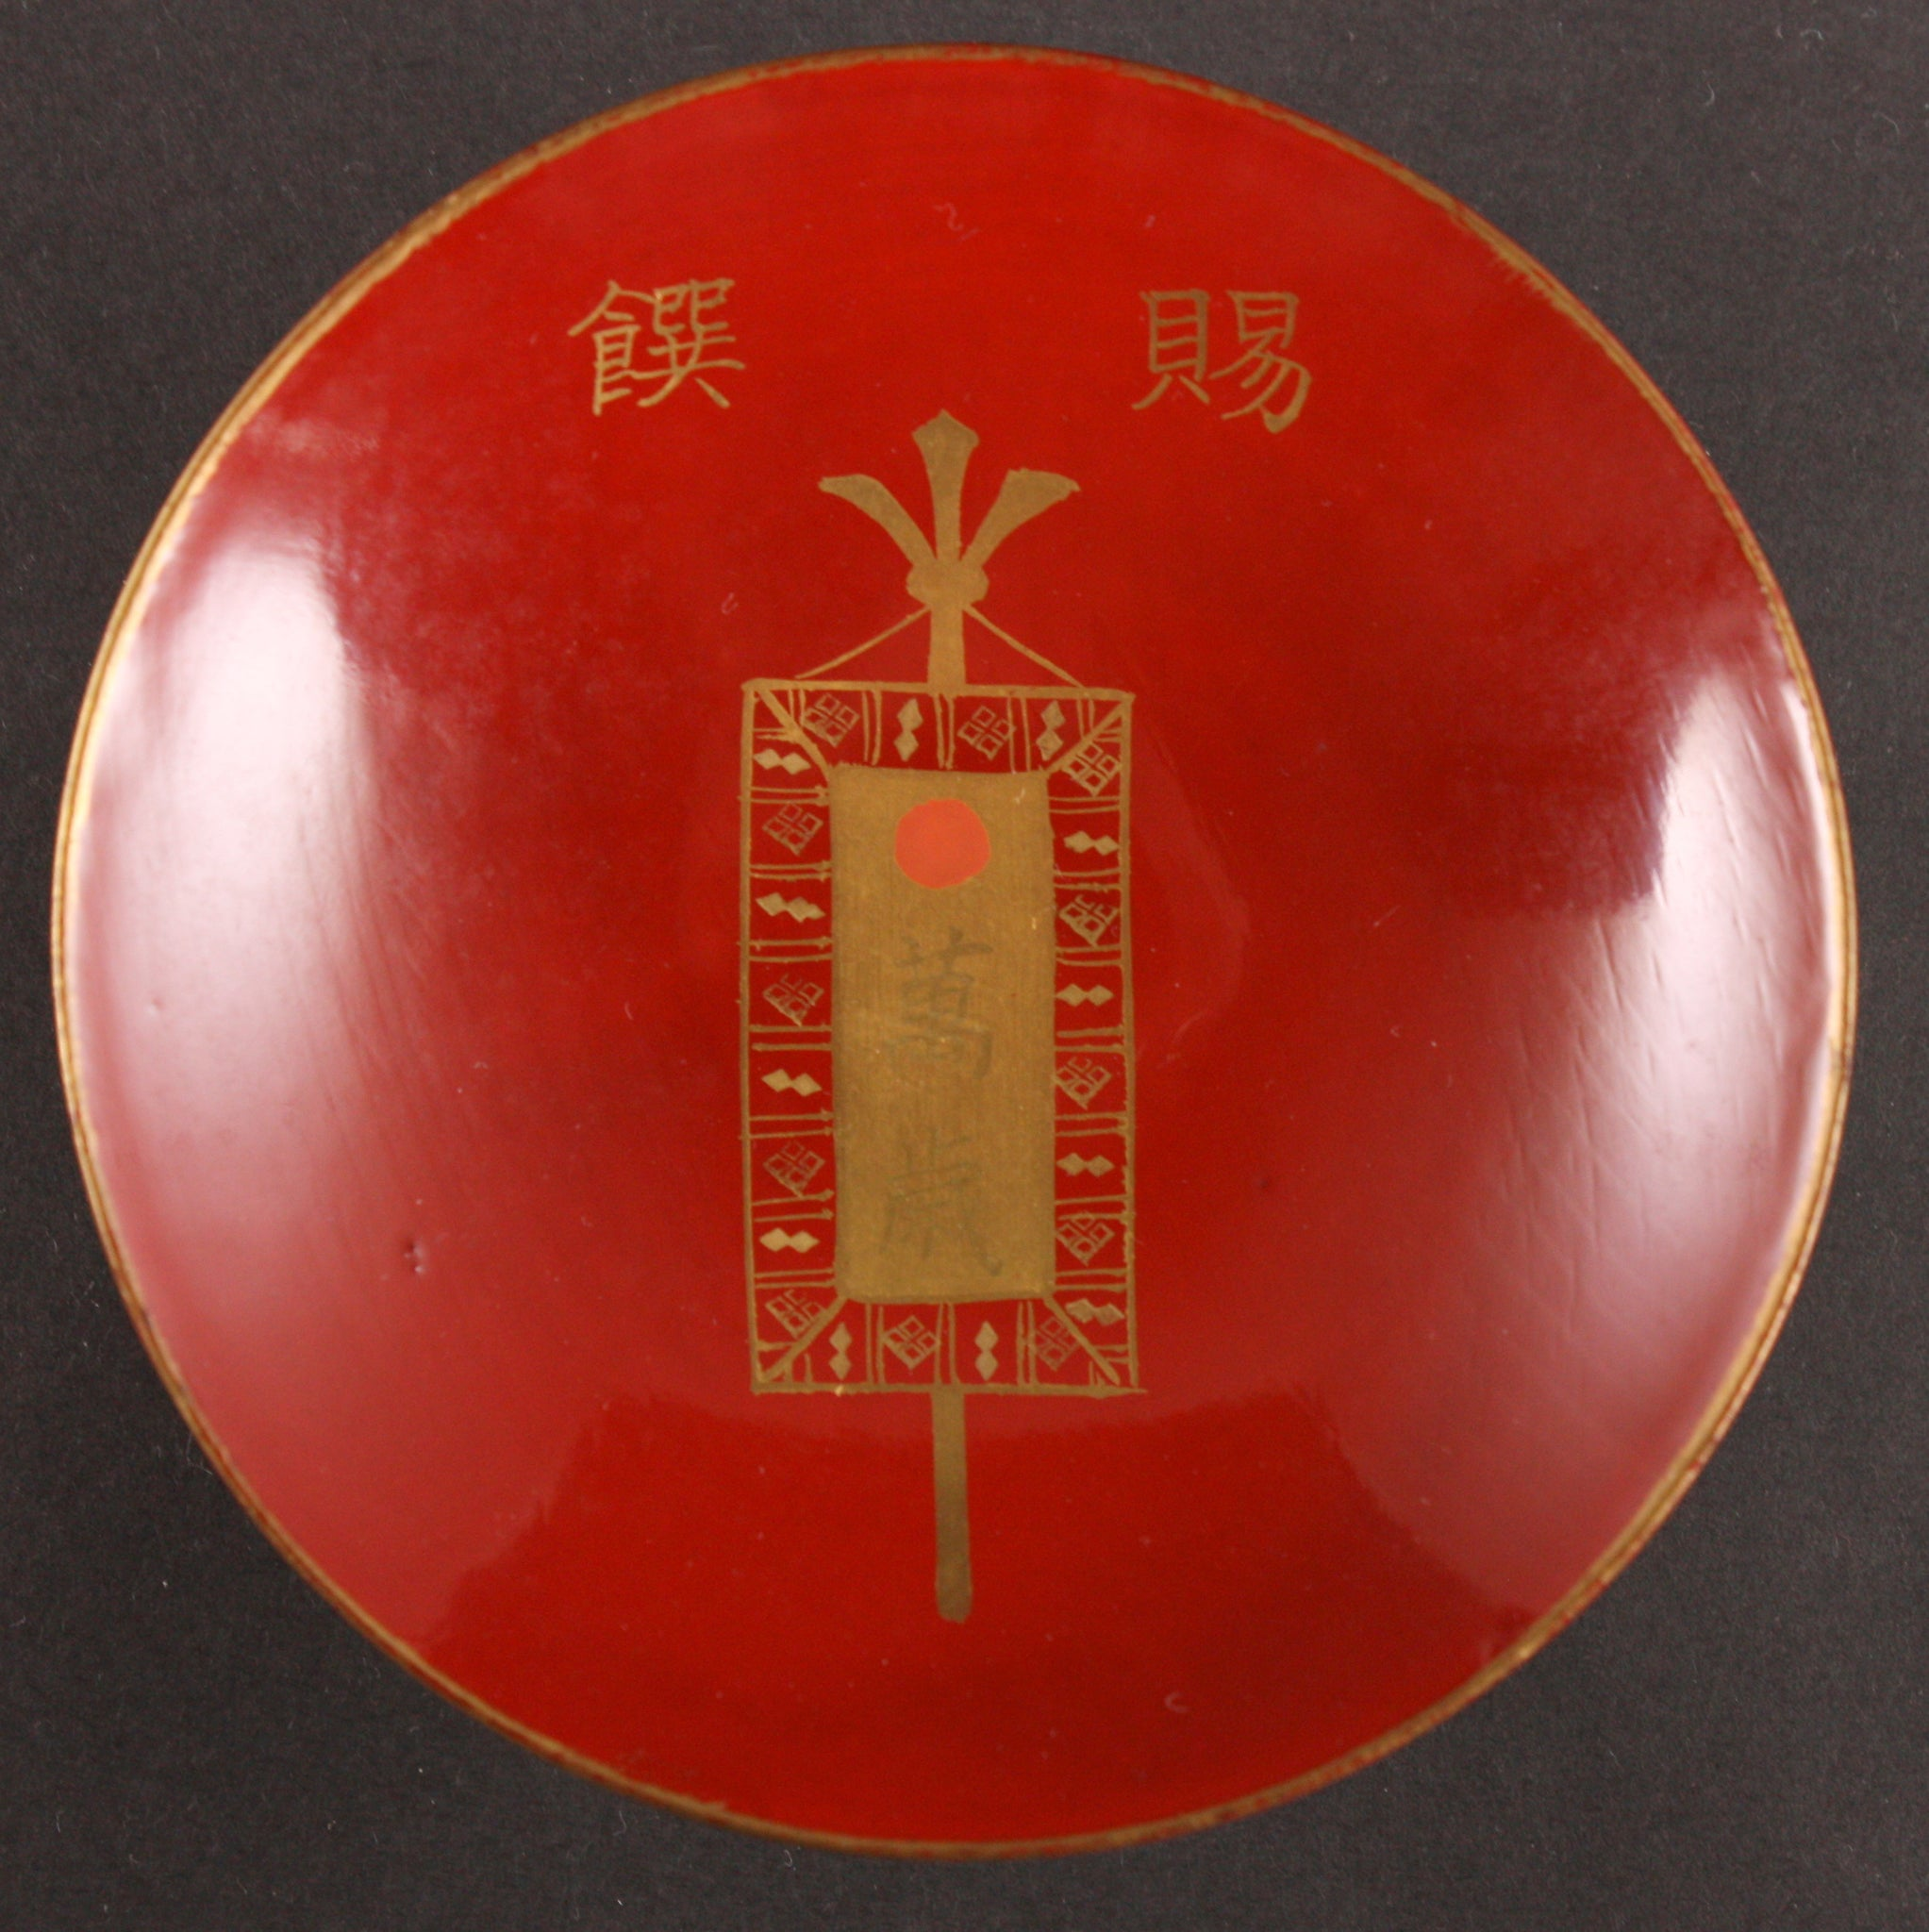 Antique Japanese Military 1915 Taisho Enthronement Commemoration Lacquer Sake Cup